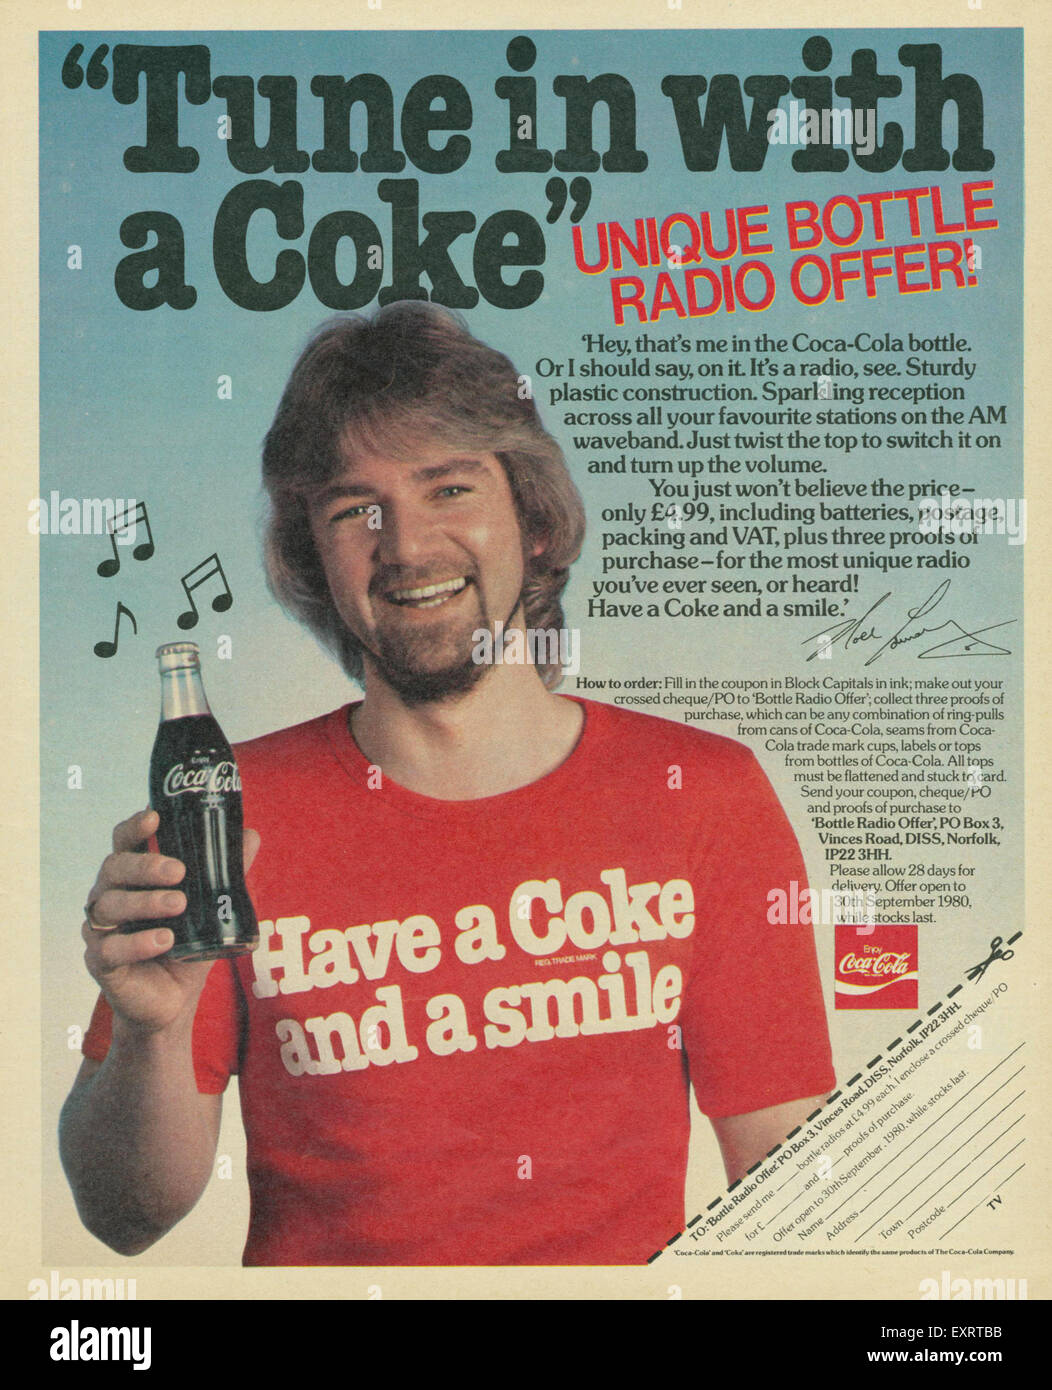 1970s Uk Coca Cola Magazine Advert Stock Photos & 1970s Uk